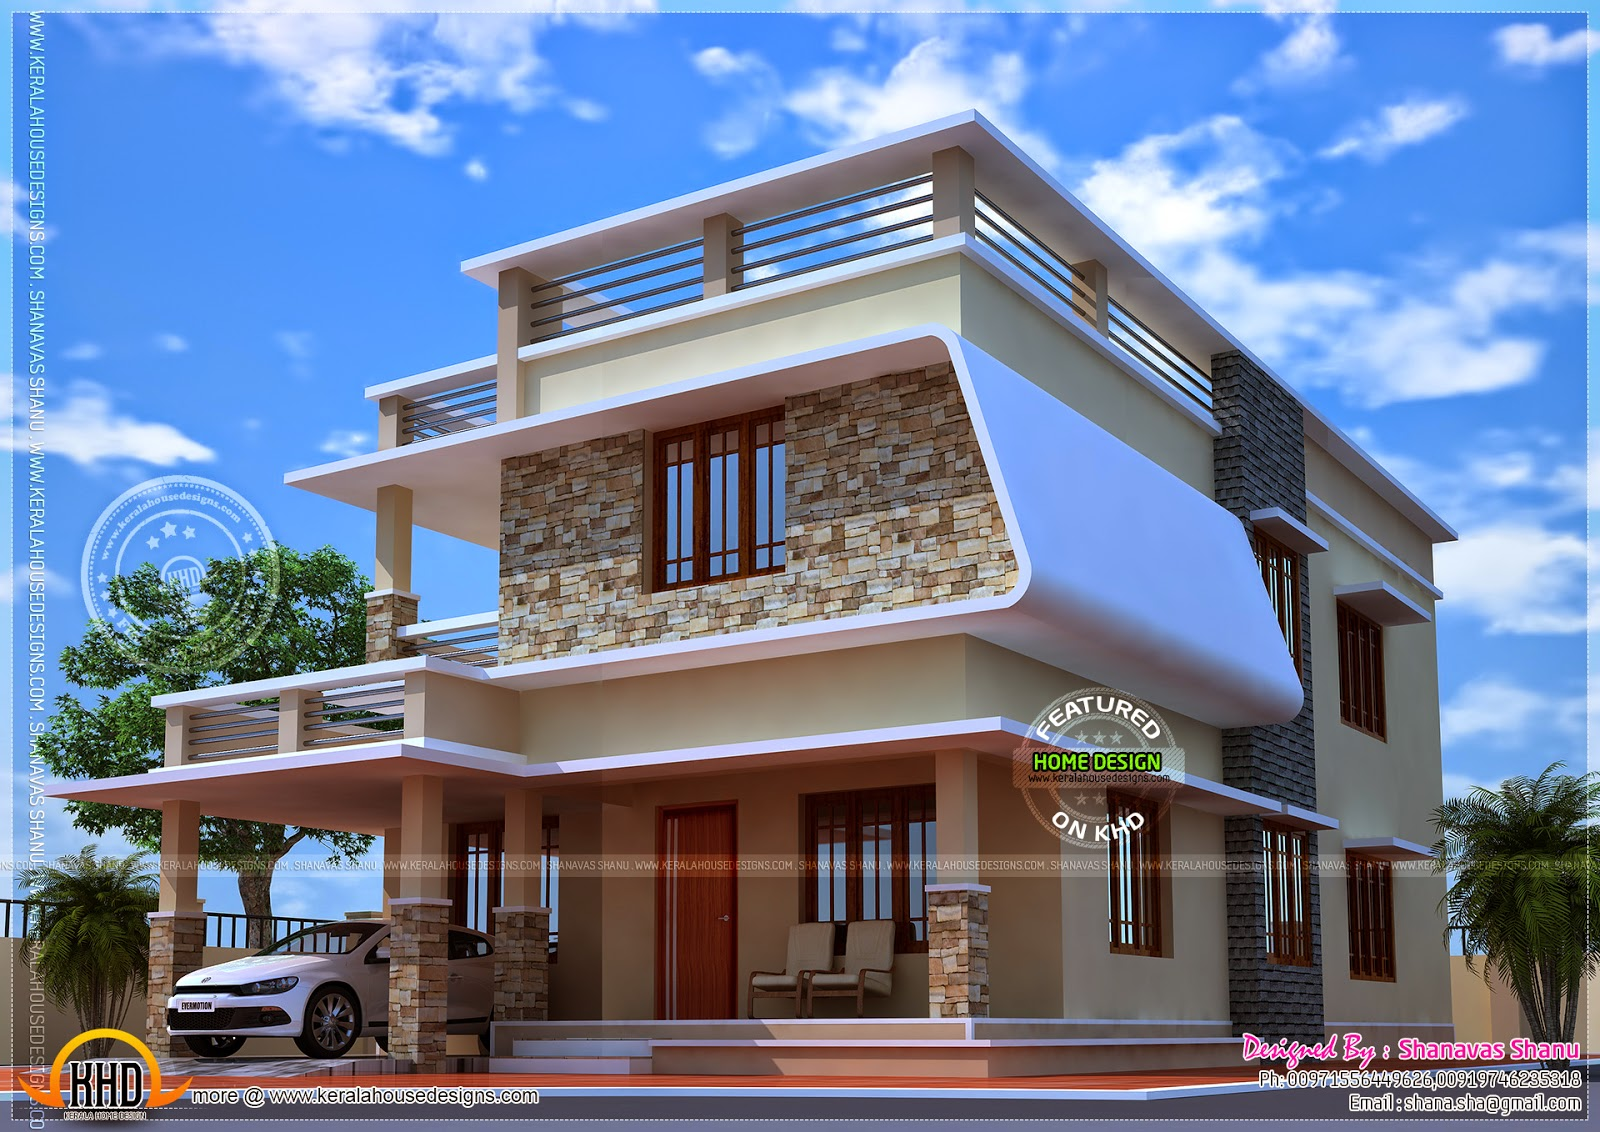 Moreover nice modern house floor plans as well small modern house